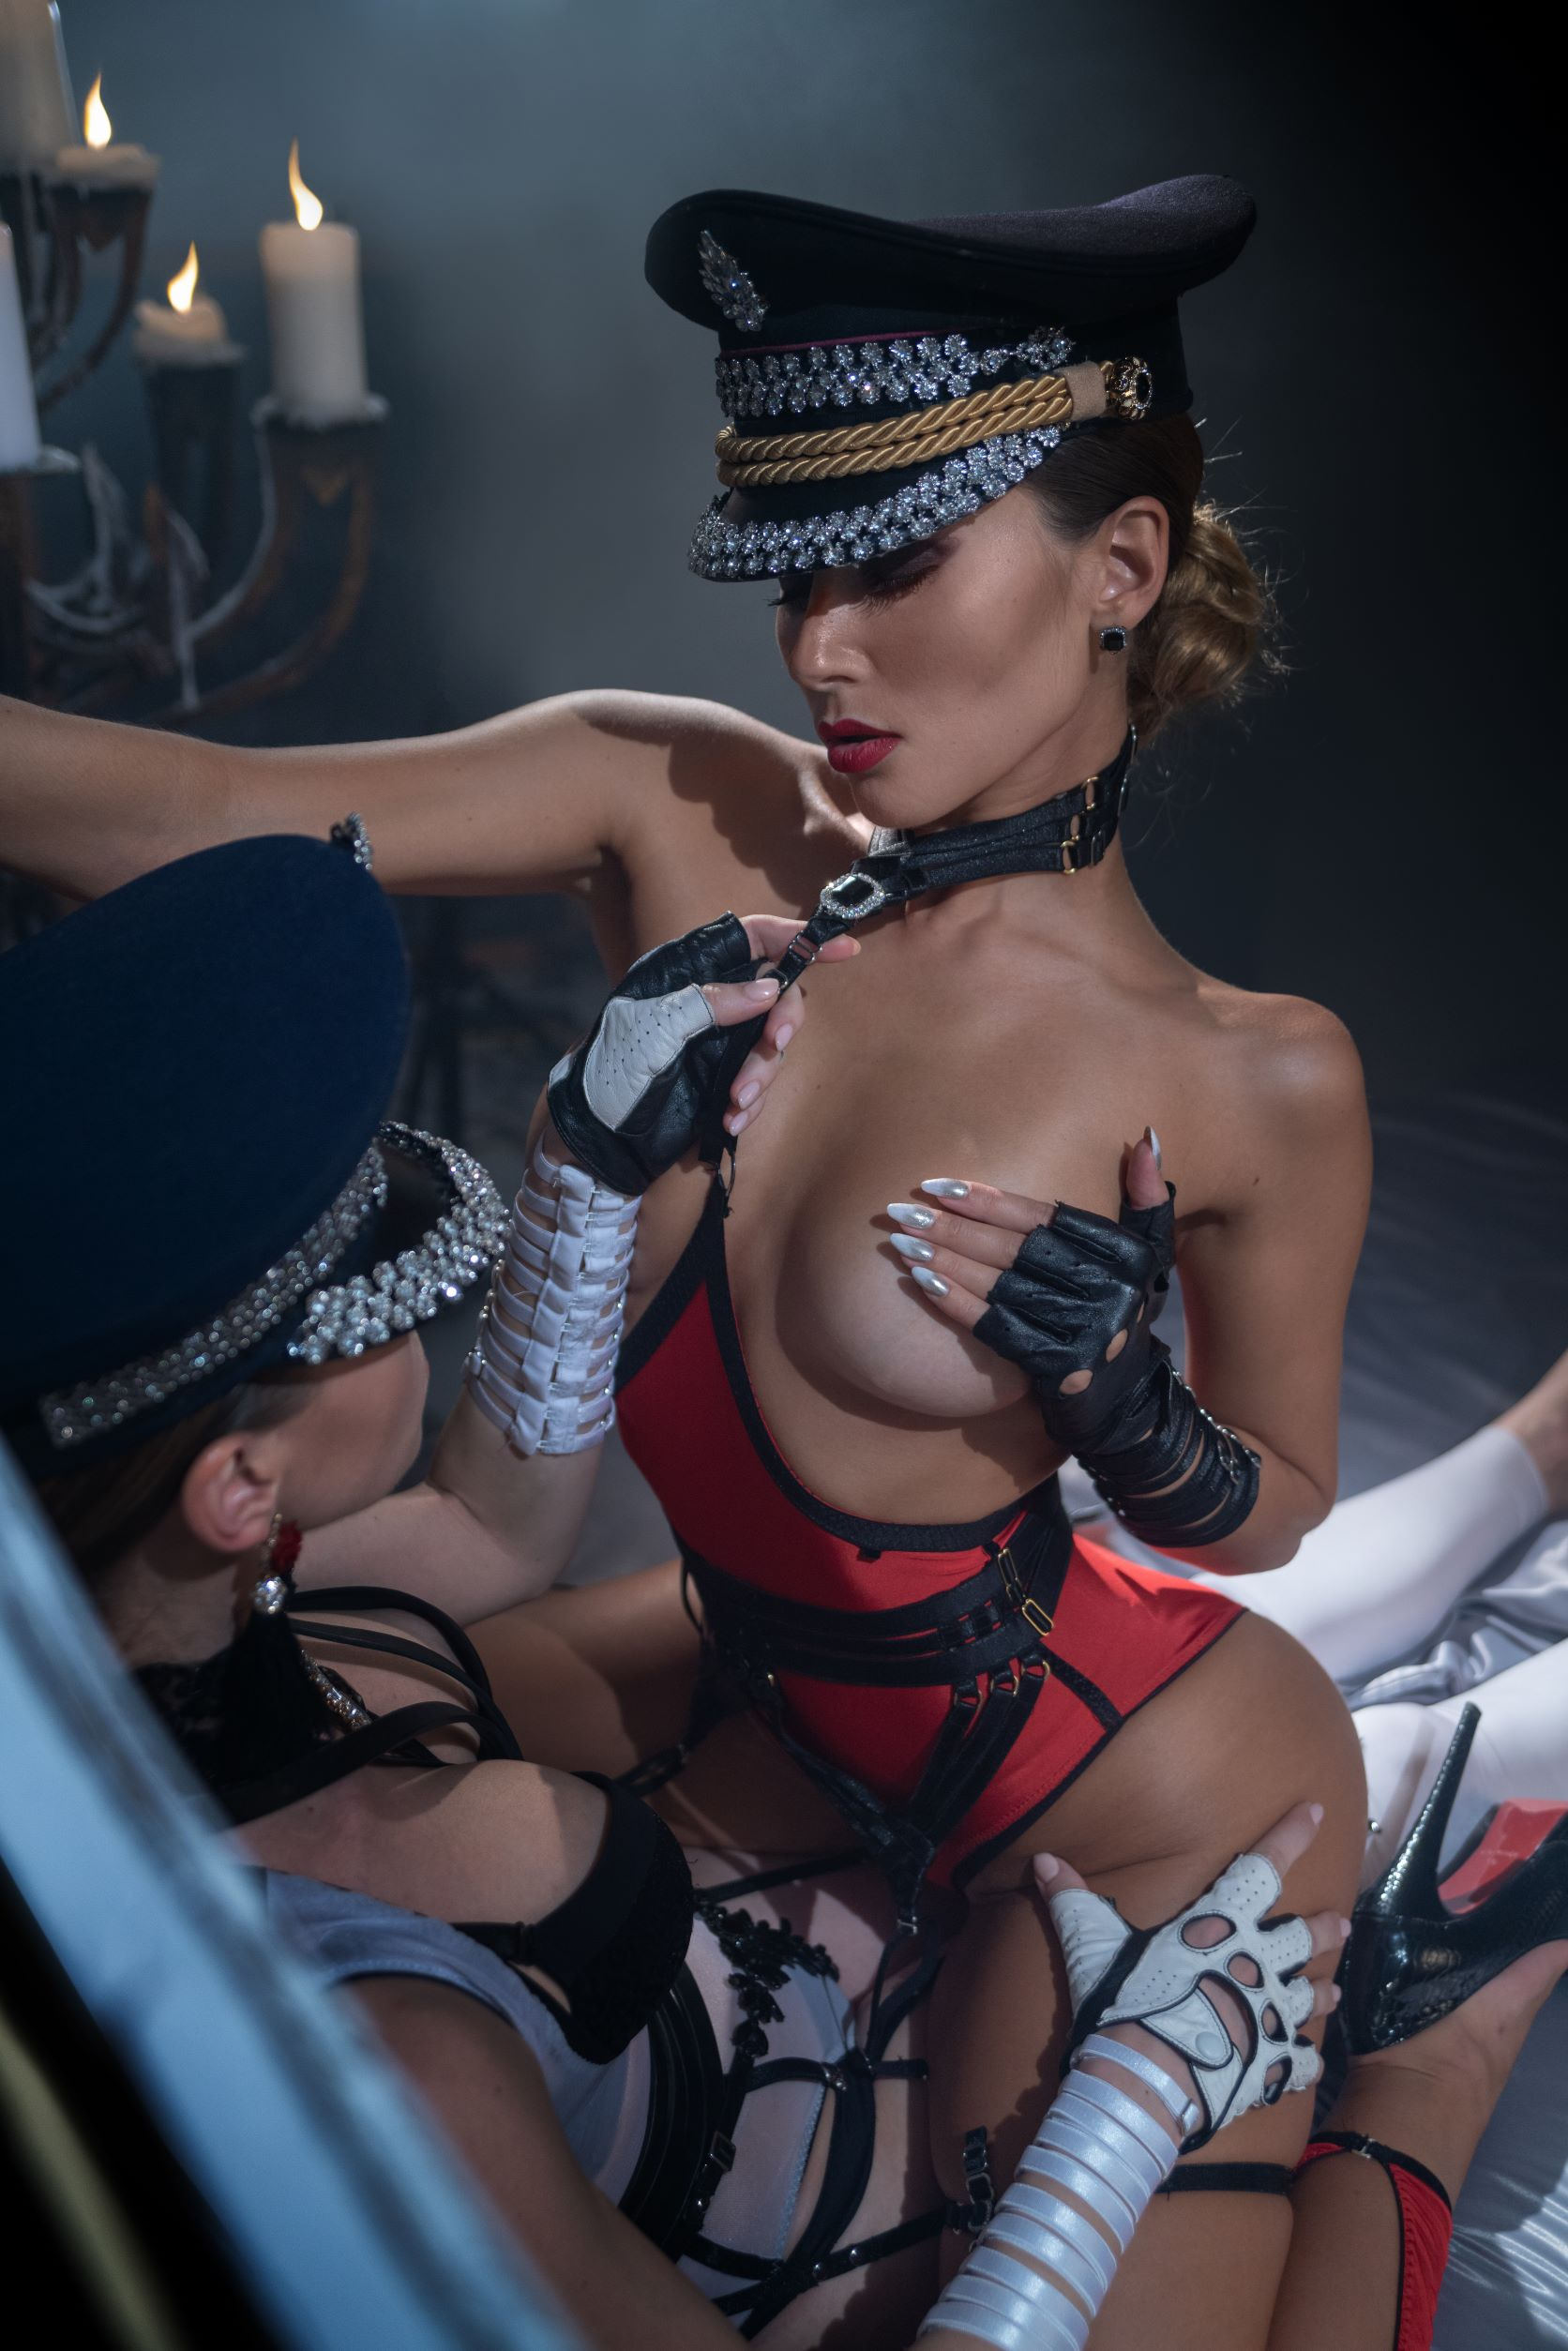 Two women caressing wearing black and red lingerie and embellished hats